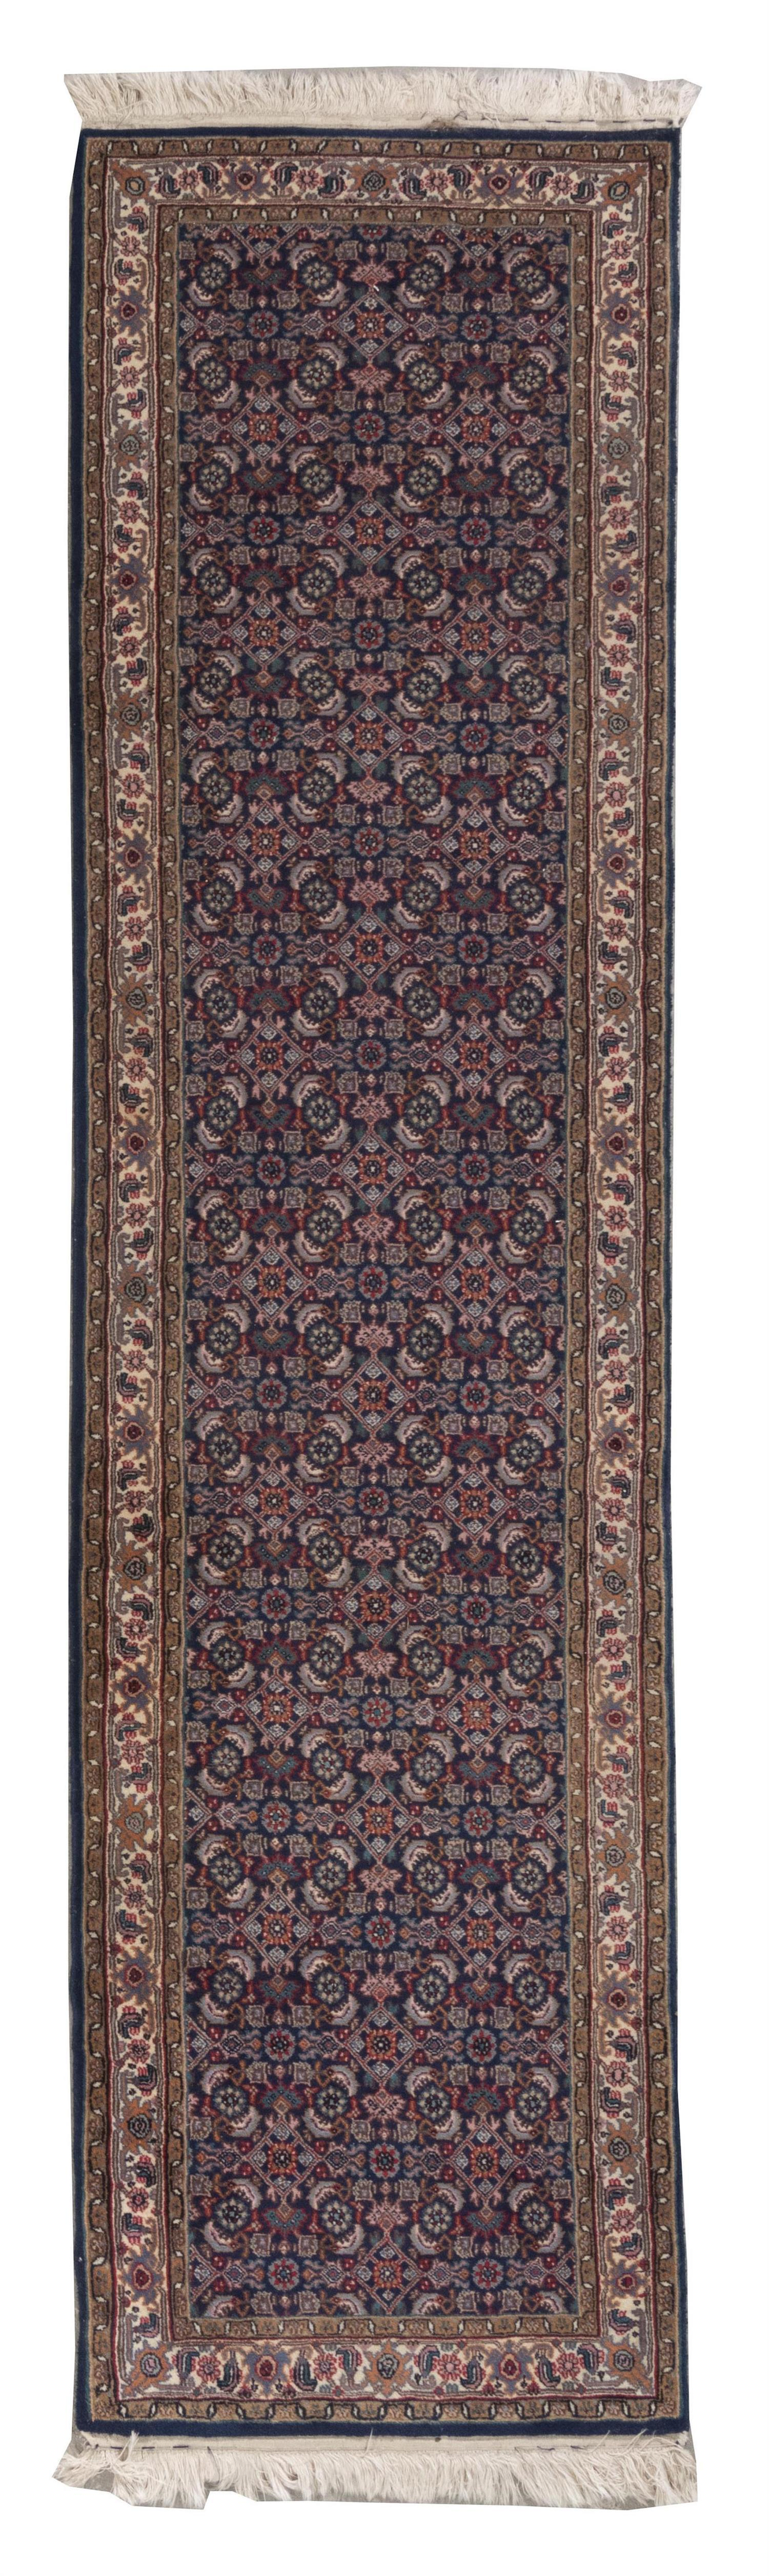 "ORIENTAL RUG: BIDJAR DESIGN RUNNER 2'6"" x 9'9"" Navy blue field with three columns of red, pink, pale blue, emerald green, and subtle."